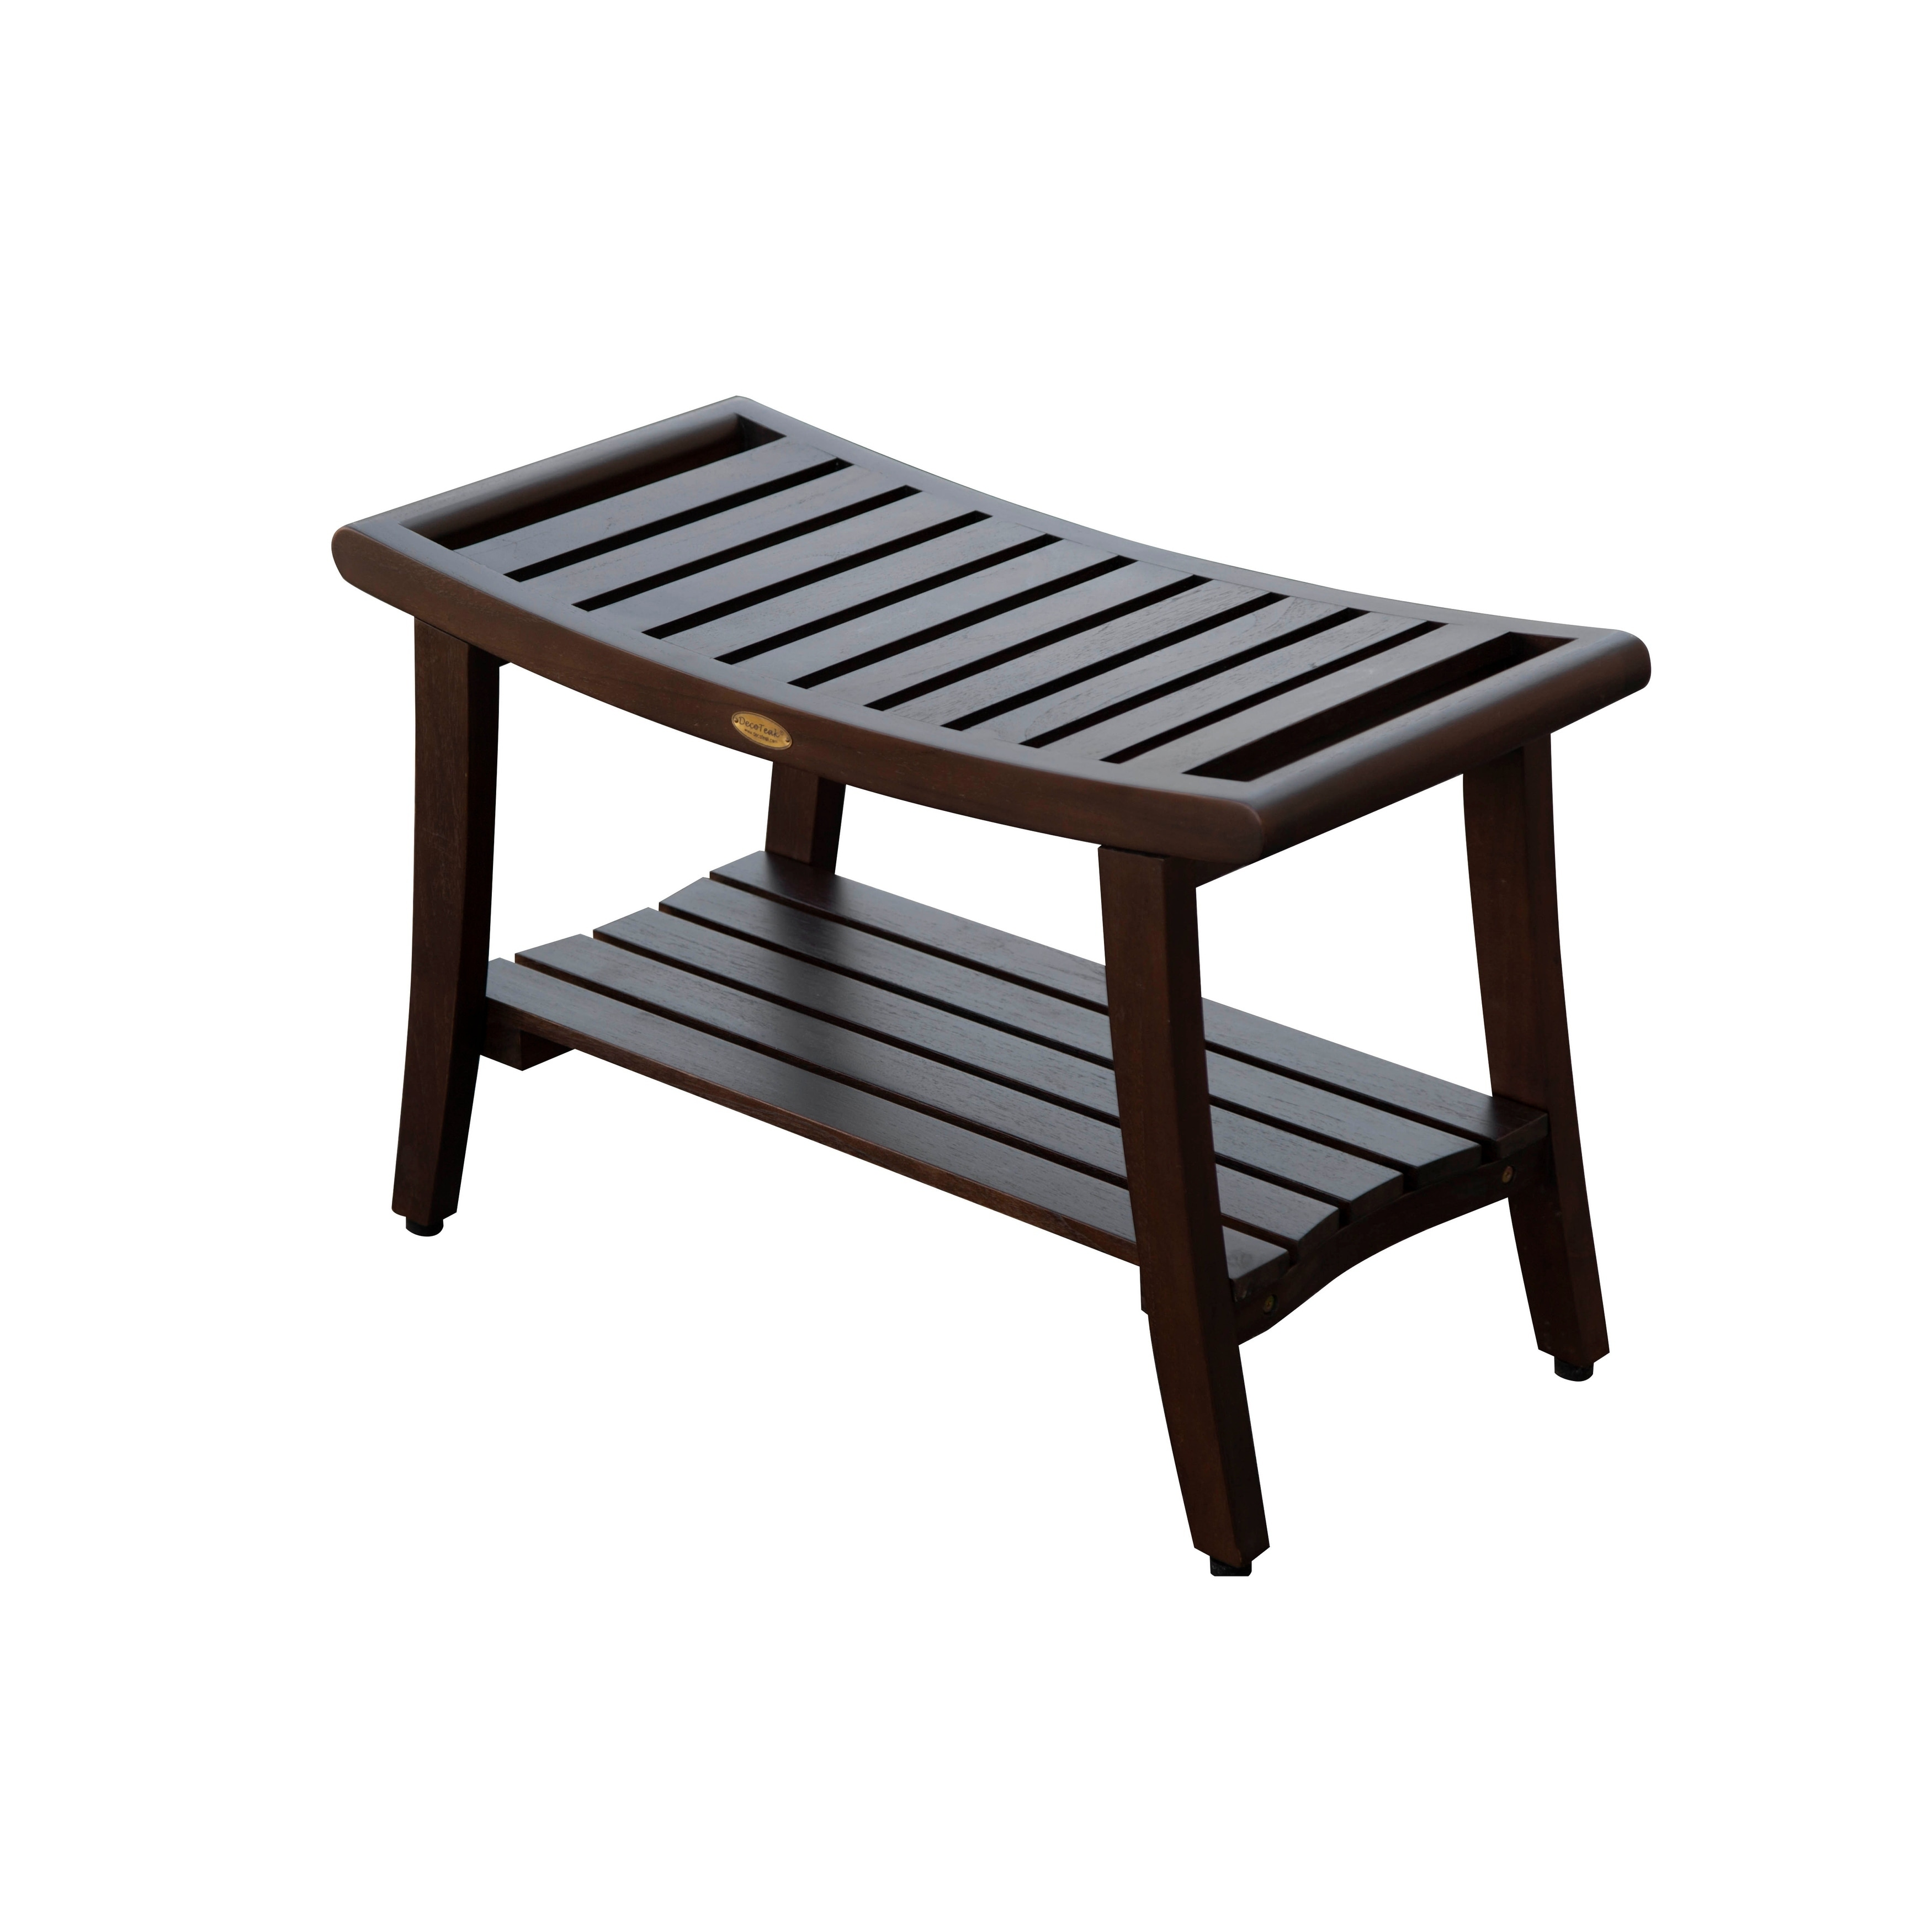 Picture of: Shop 30 Decoteak Harmony Solid Teak Shower Bench With Shelf And Liftaide Arms In Woodland Brown Finish Overstock 28301025